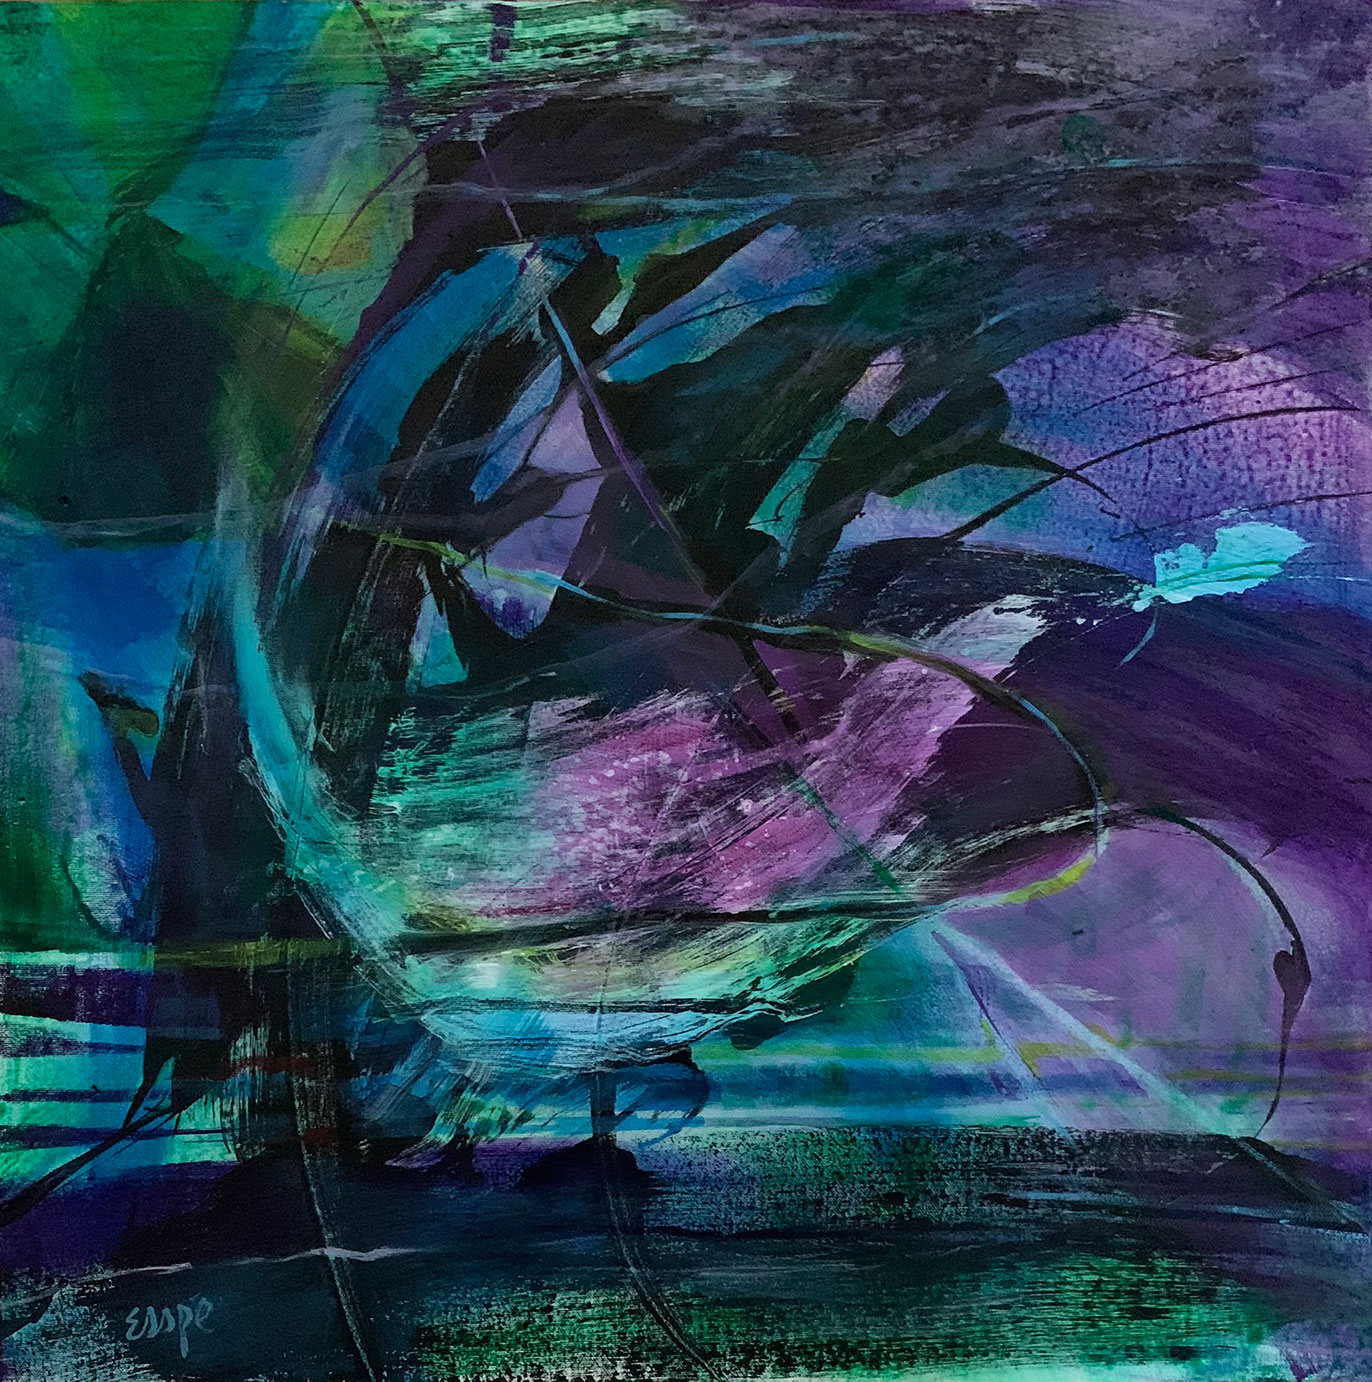 Underwater abstract painting